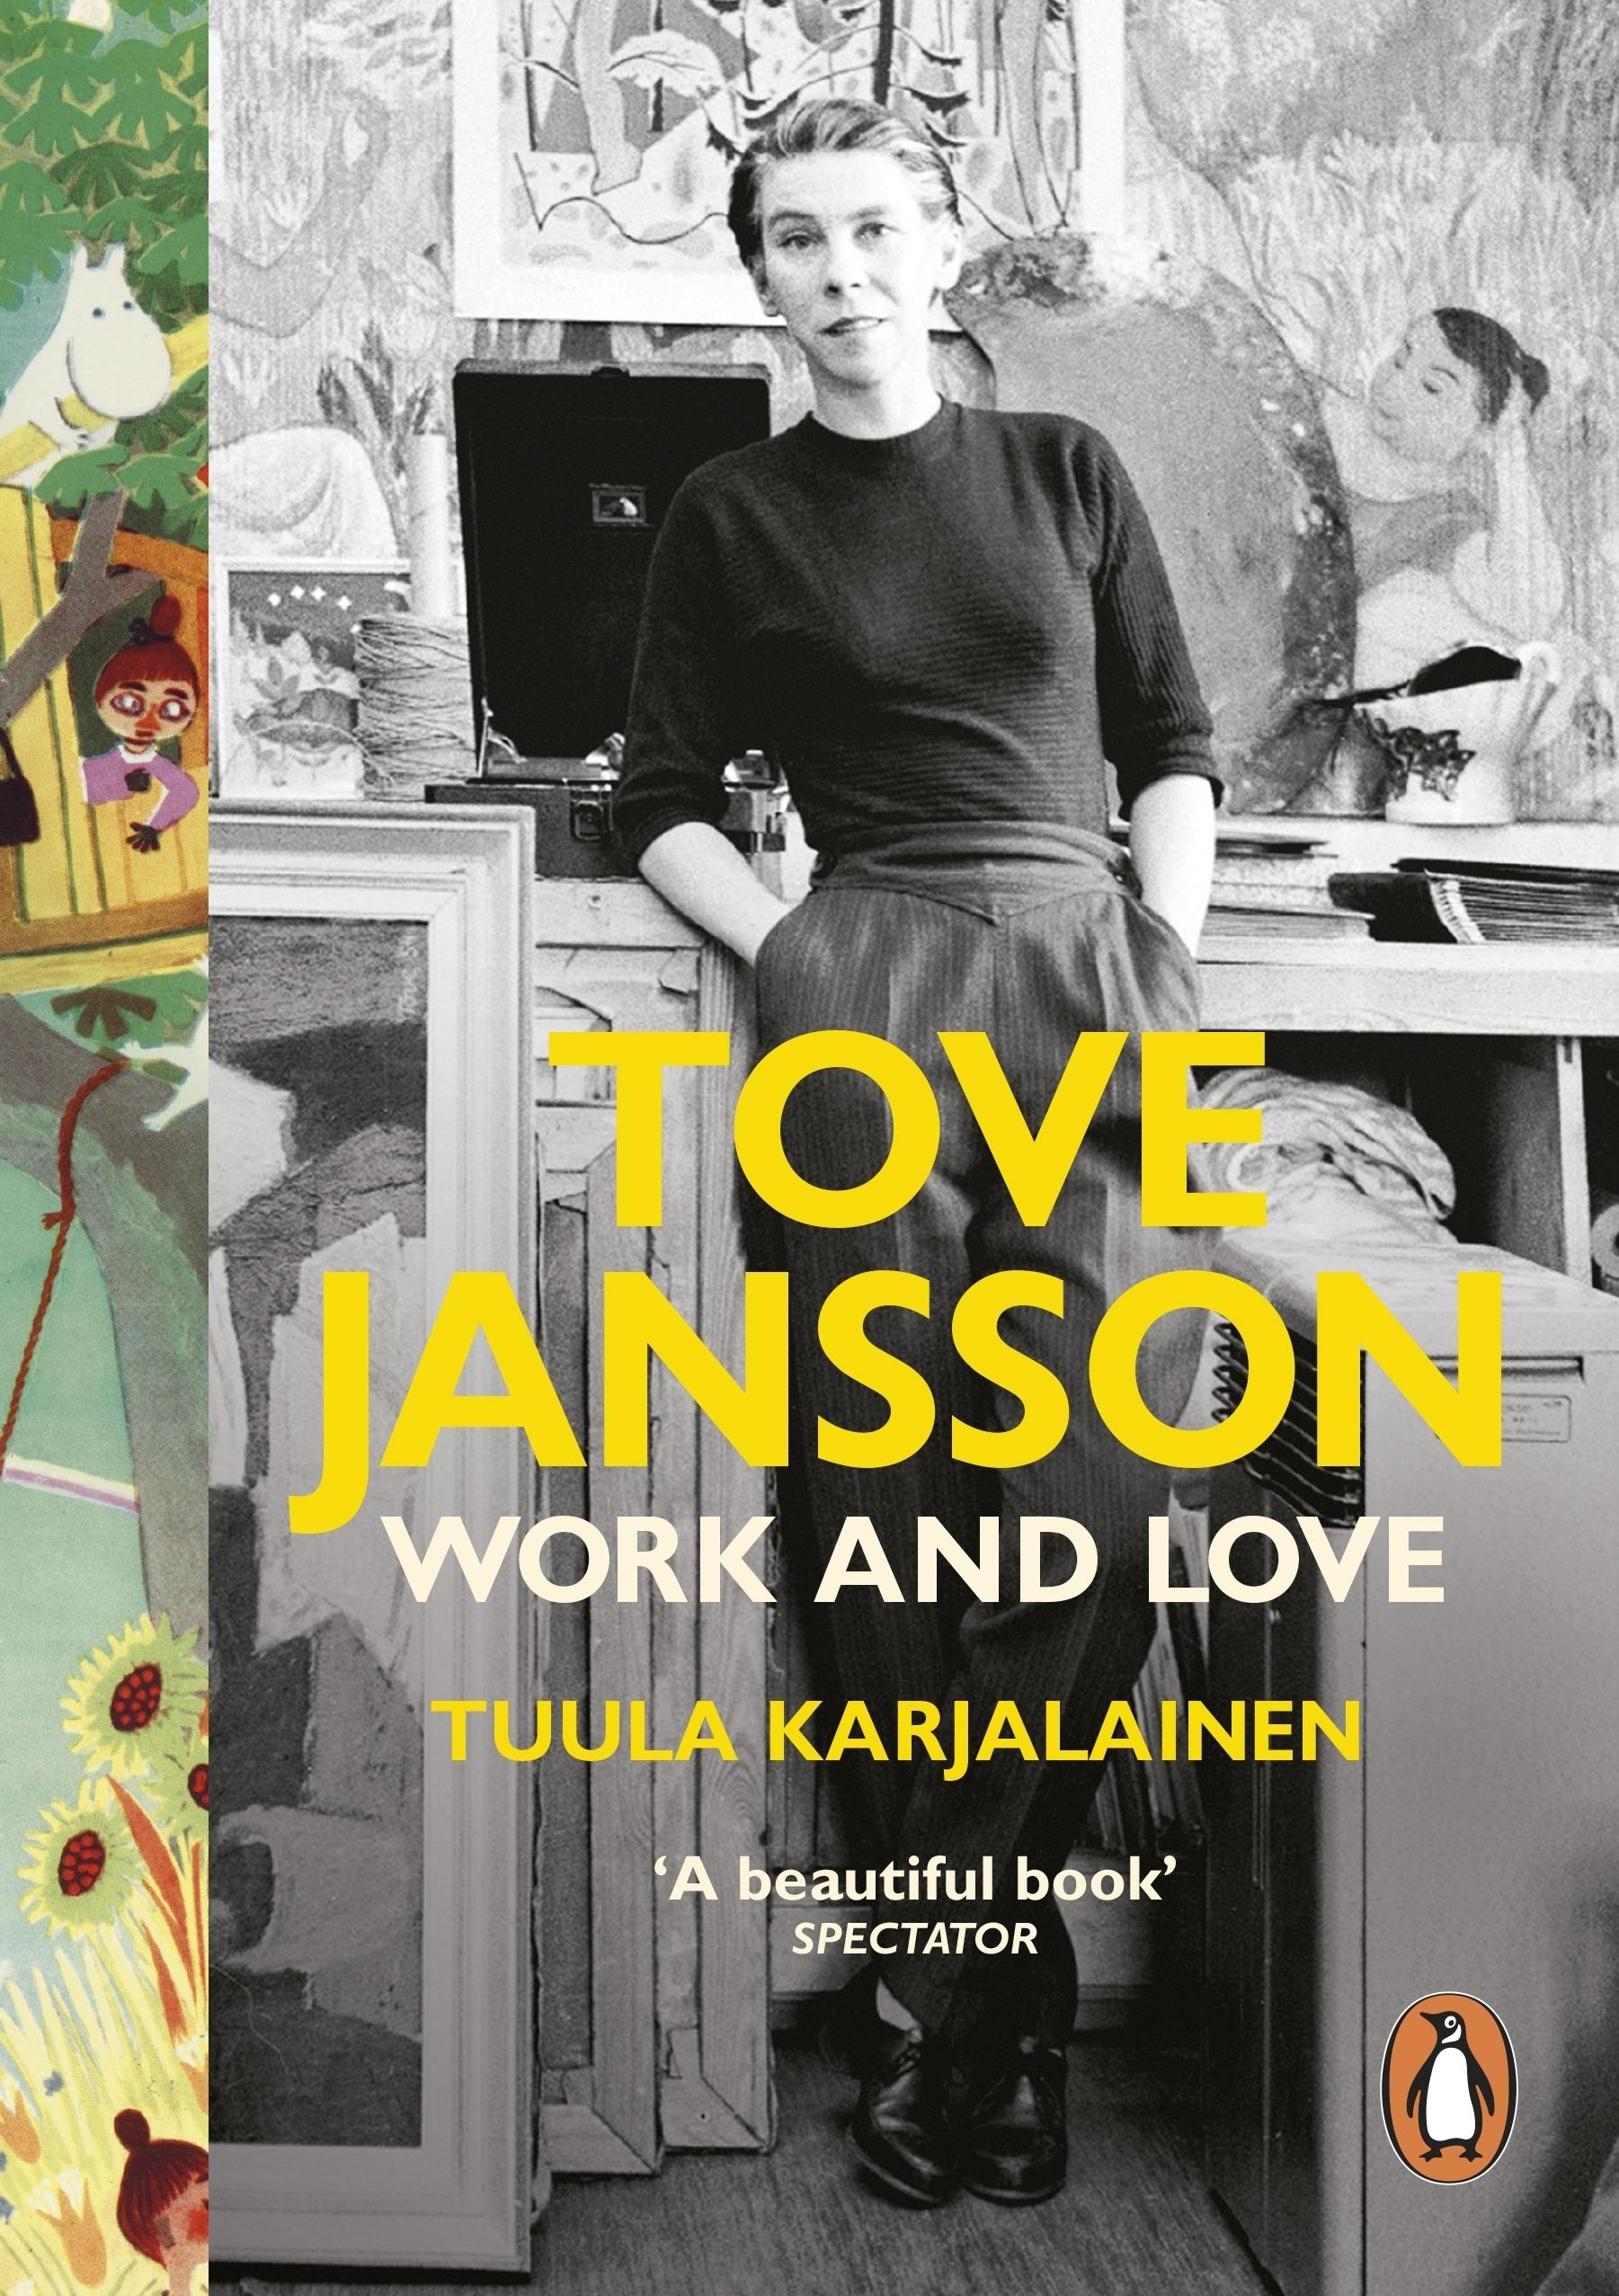 Tove Jansson: Work and Love